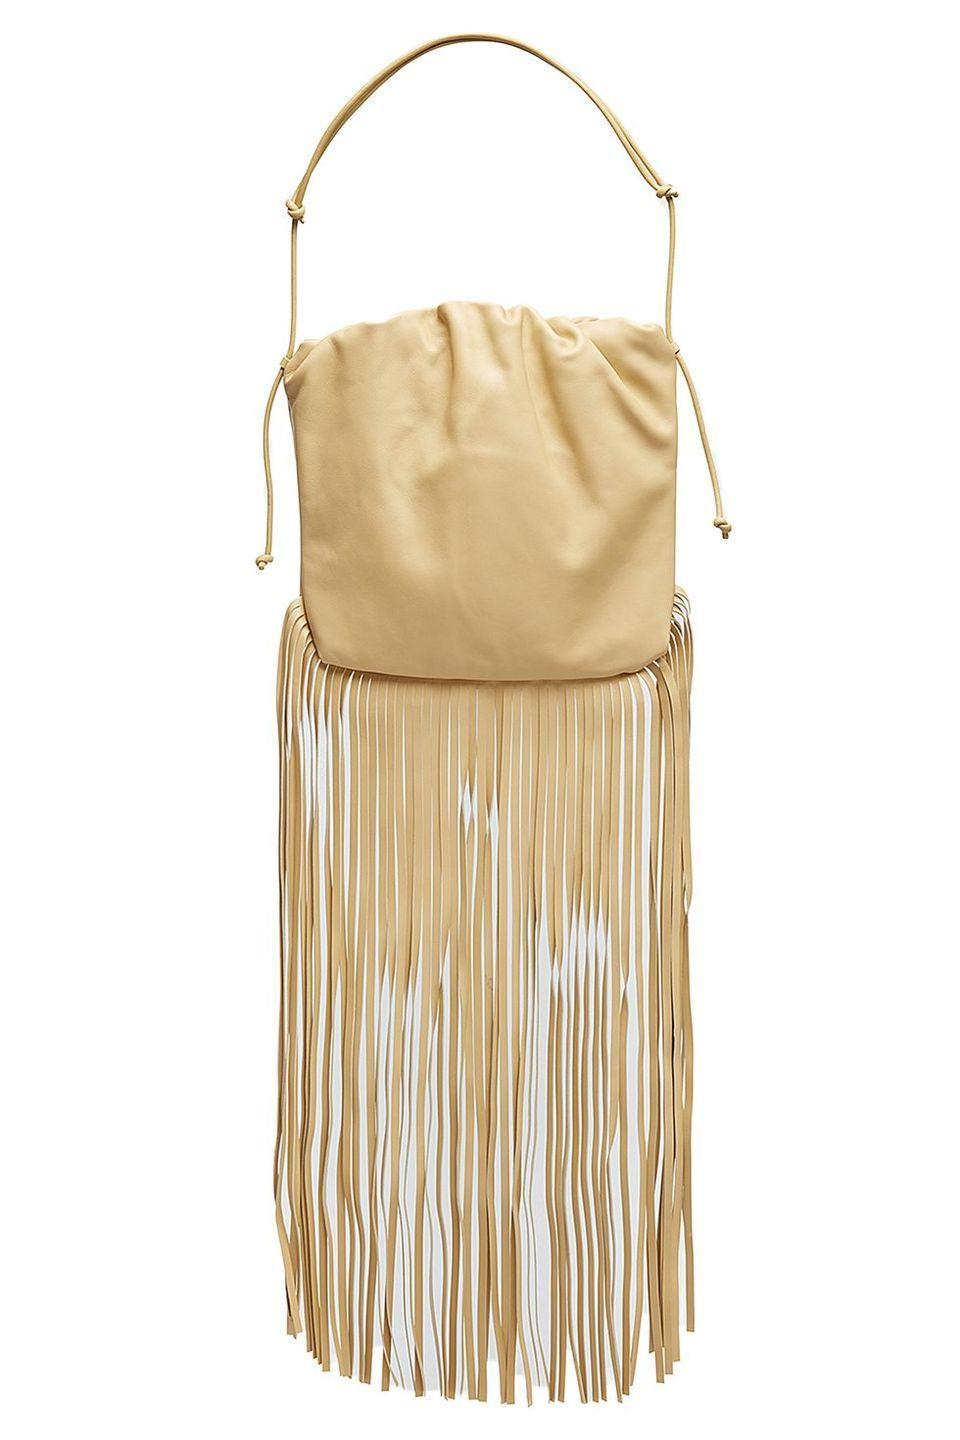 "<p>Another season, another Bottega Veneta handbag we can't stop thinking about. This time around, we're eyeing its pre-fall fringe pouch that comes in a buttery leather <em>and </em>a buttery shade.</p><p><em>Bottega Veneta, $2,800; bottegaveneta.com</em></p><p><a class=""link rapid-noclick-resp"" href=""https://go.redirectingat.com?id=74968X1596630&url=https%3A%2F%2Fwww.bottegaveneta.com%2Fus%2Fclutch_cod45522980bi.html&sref=https%3A%2F%2Fwww.elle.com%2Ffashion%2Fshopping%2Fg33416567%2Fdesigner-it-bags-pre-fall-2021%2F"" rel=""nofollow noopener"" target=""_blank"" data-ylk=""slk:SHOP NOW"">SHOP NOW</a></p>"